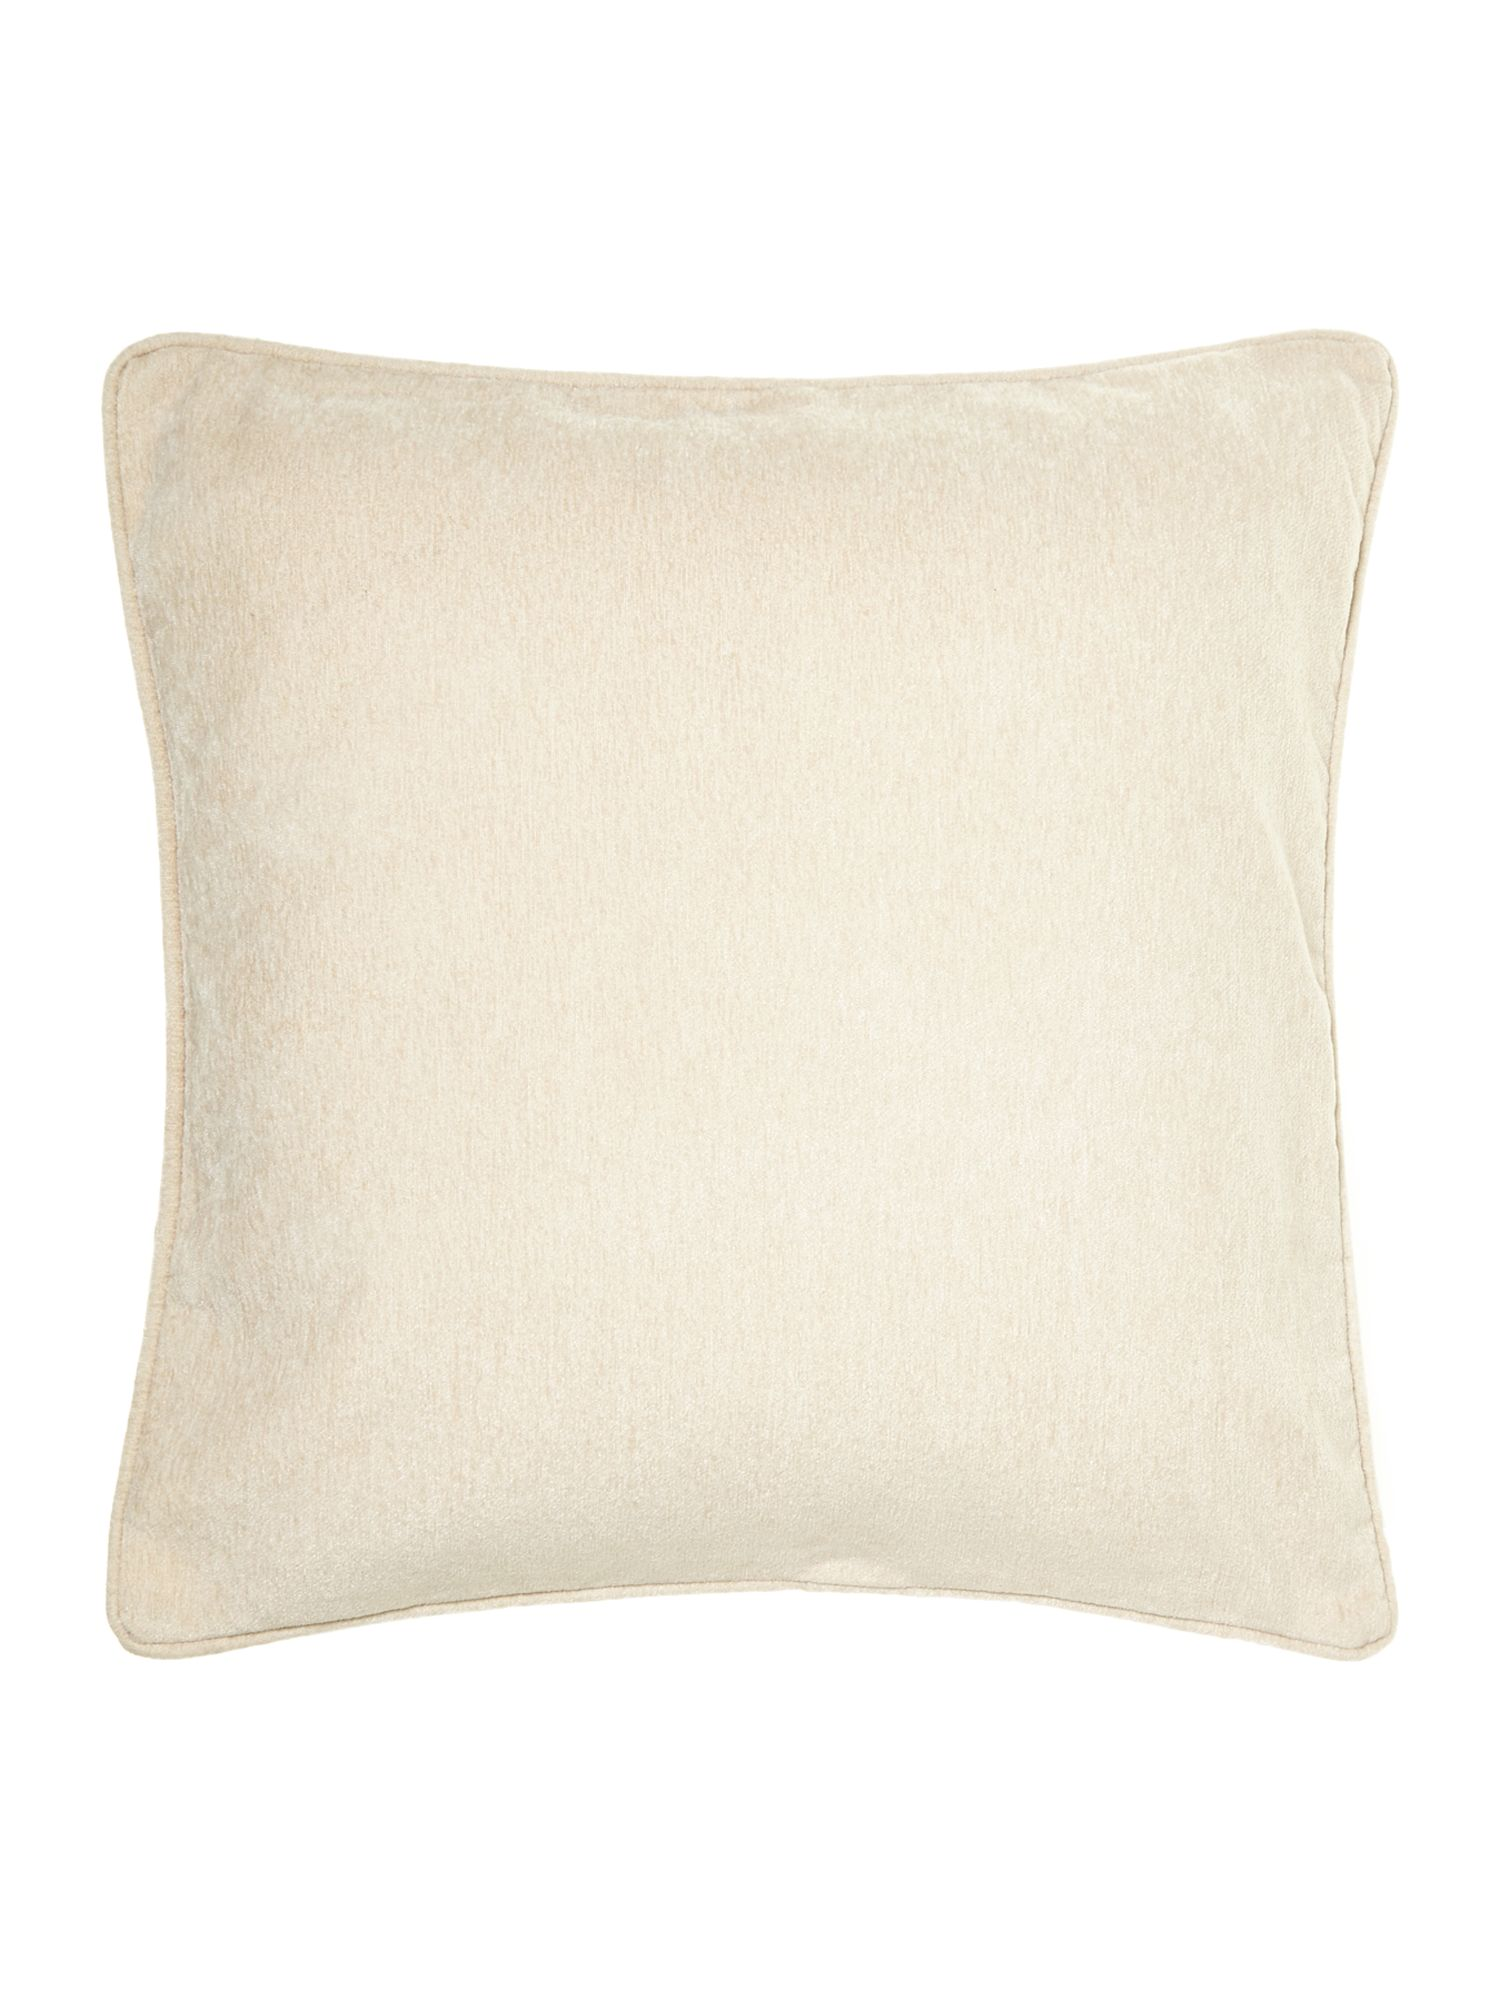 Cream chenille cushion